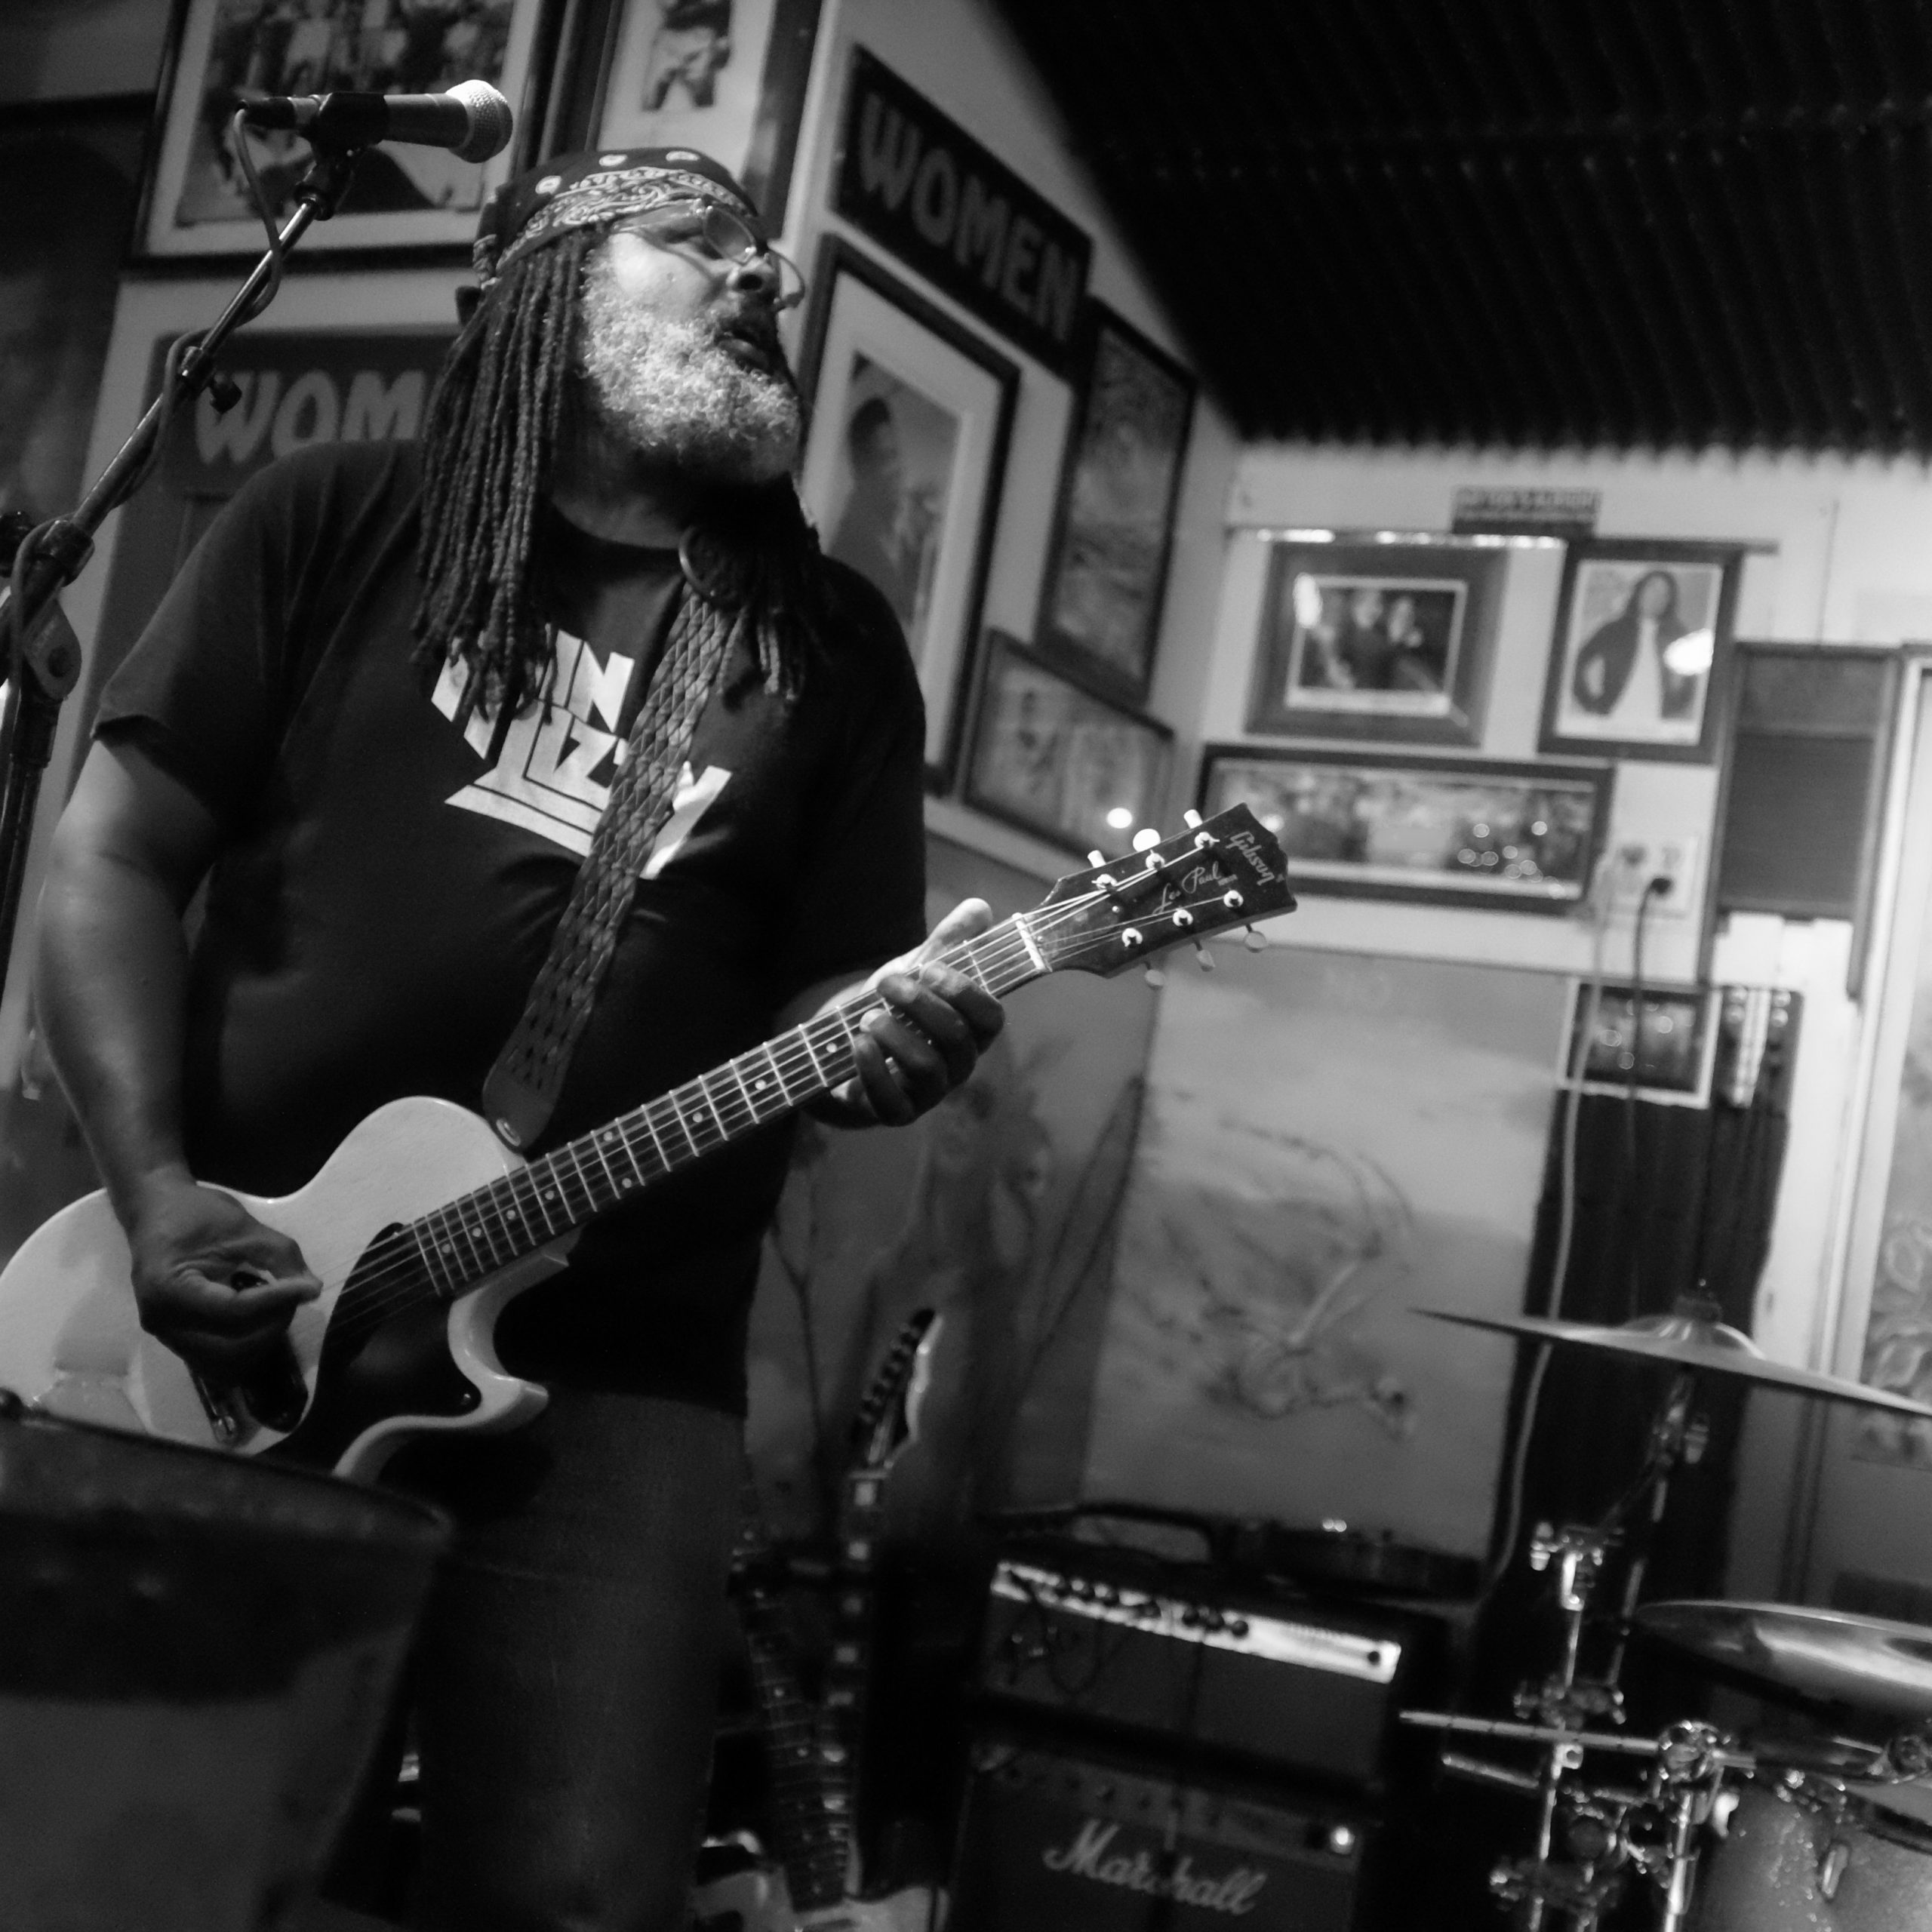 Alvin Youngblood Hart at The green parrot bar in key west